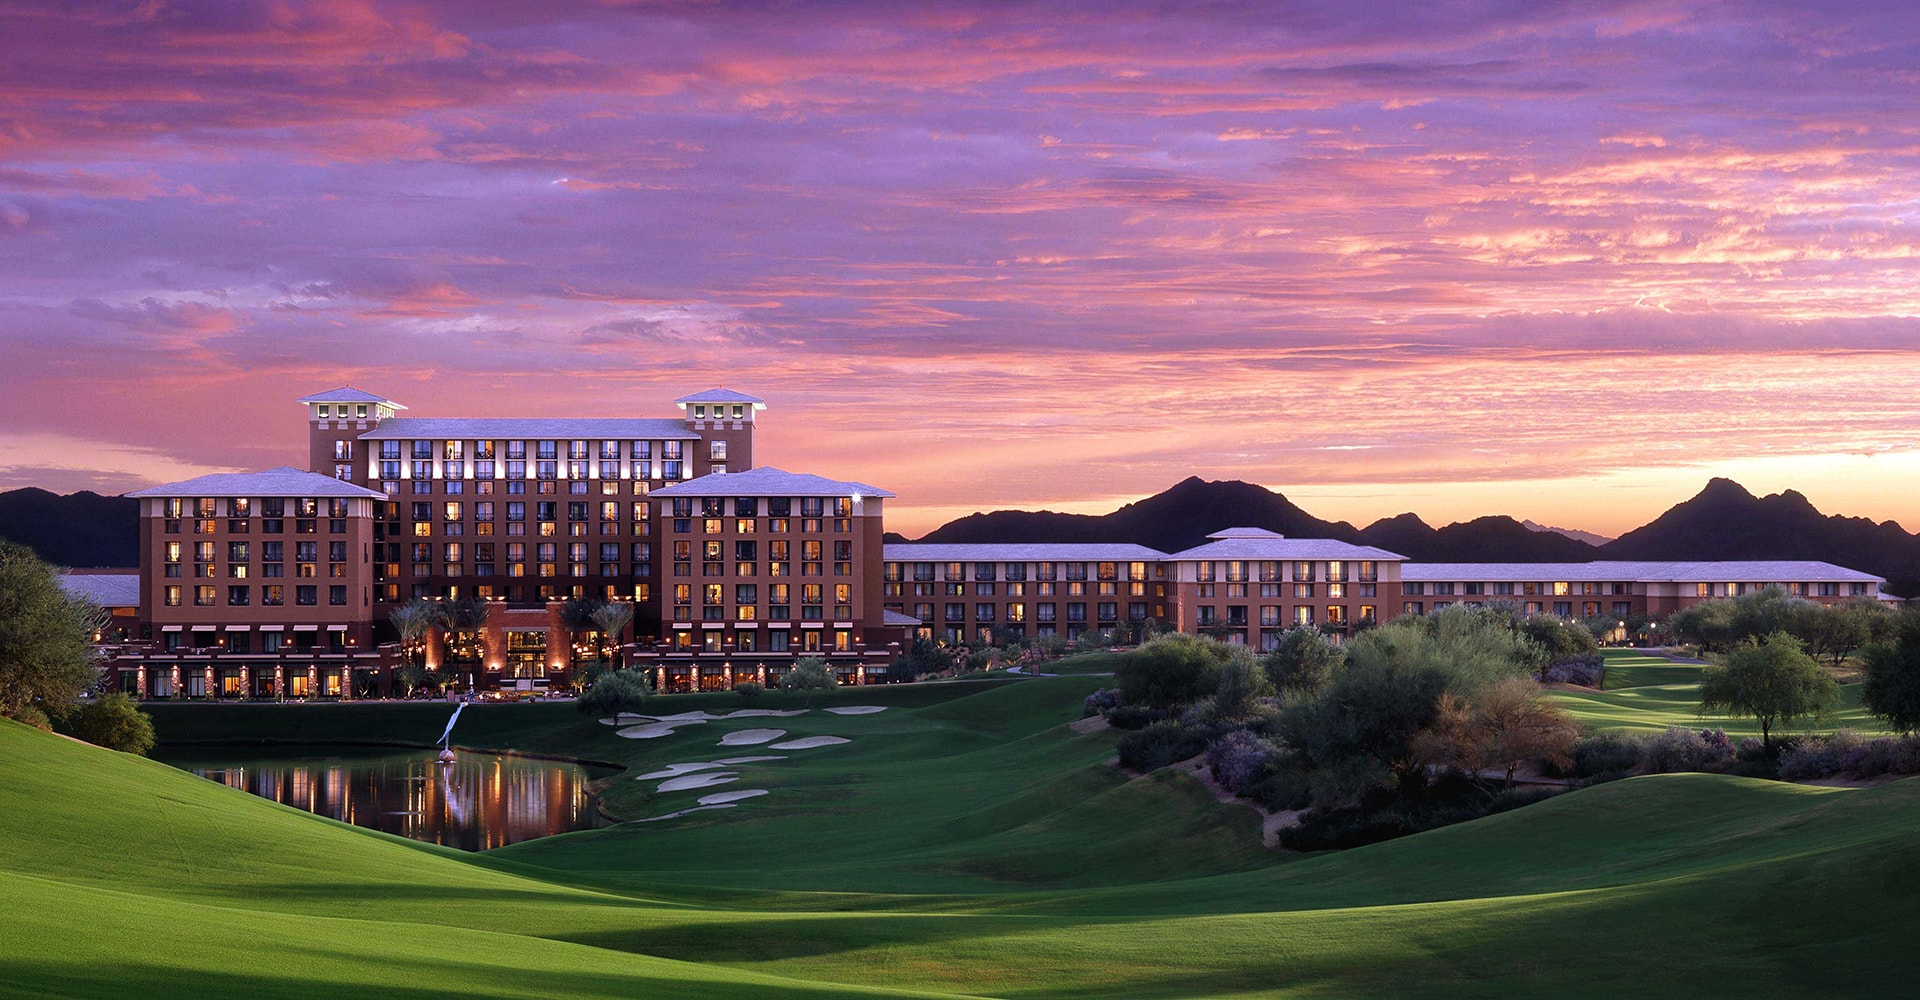 Kierland Westin Resort at Dusk In Scottsdale Arizona